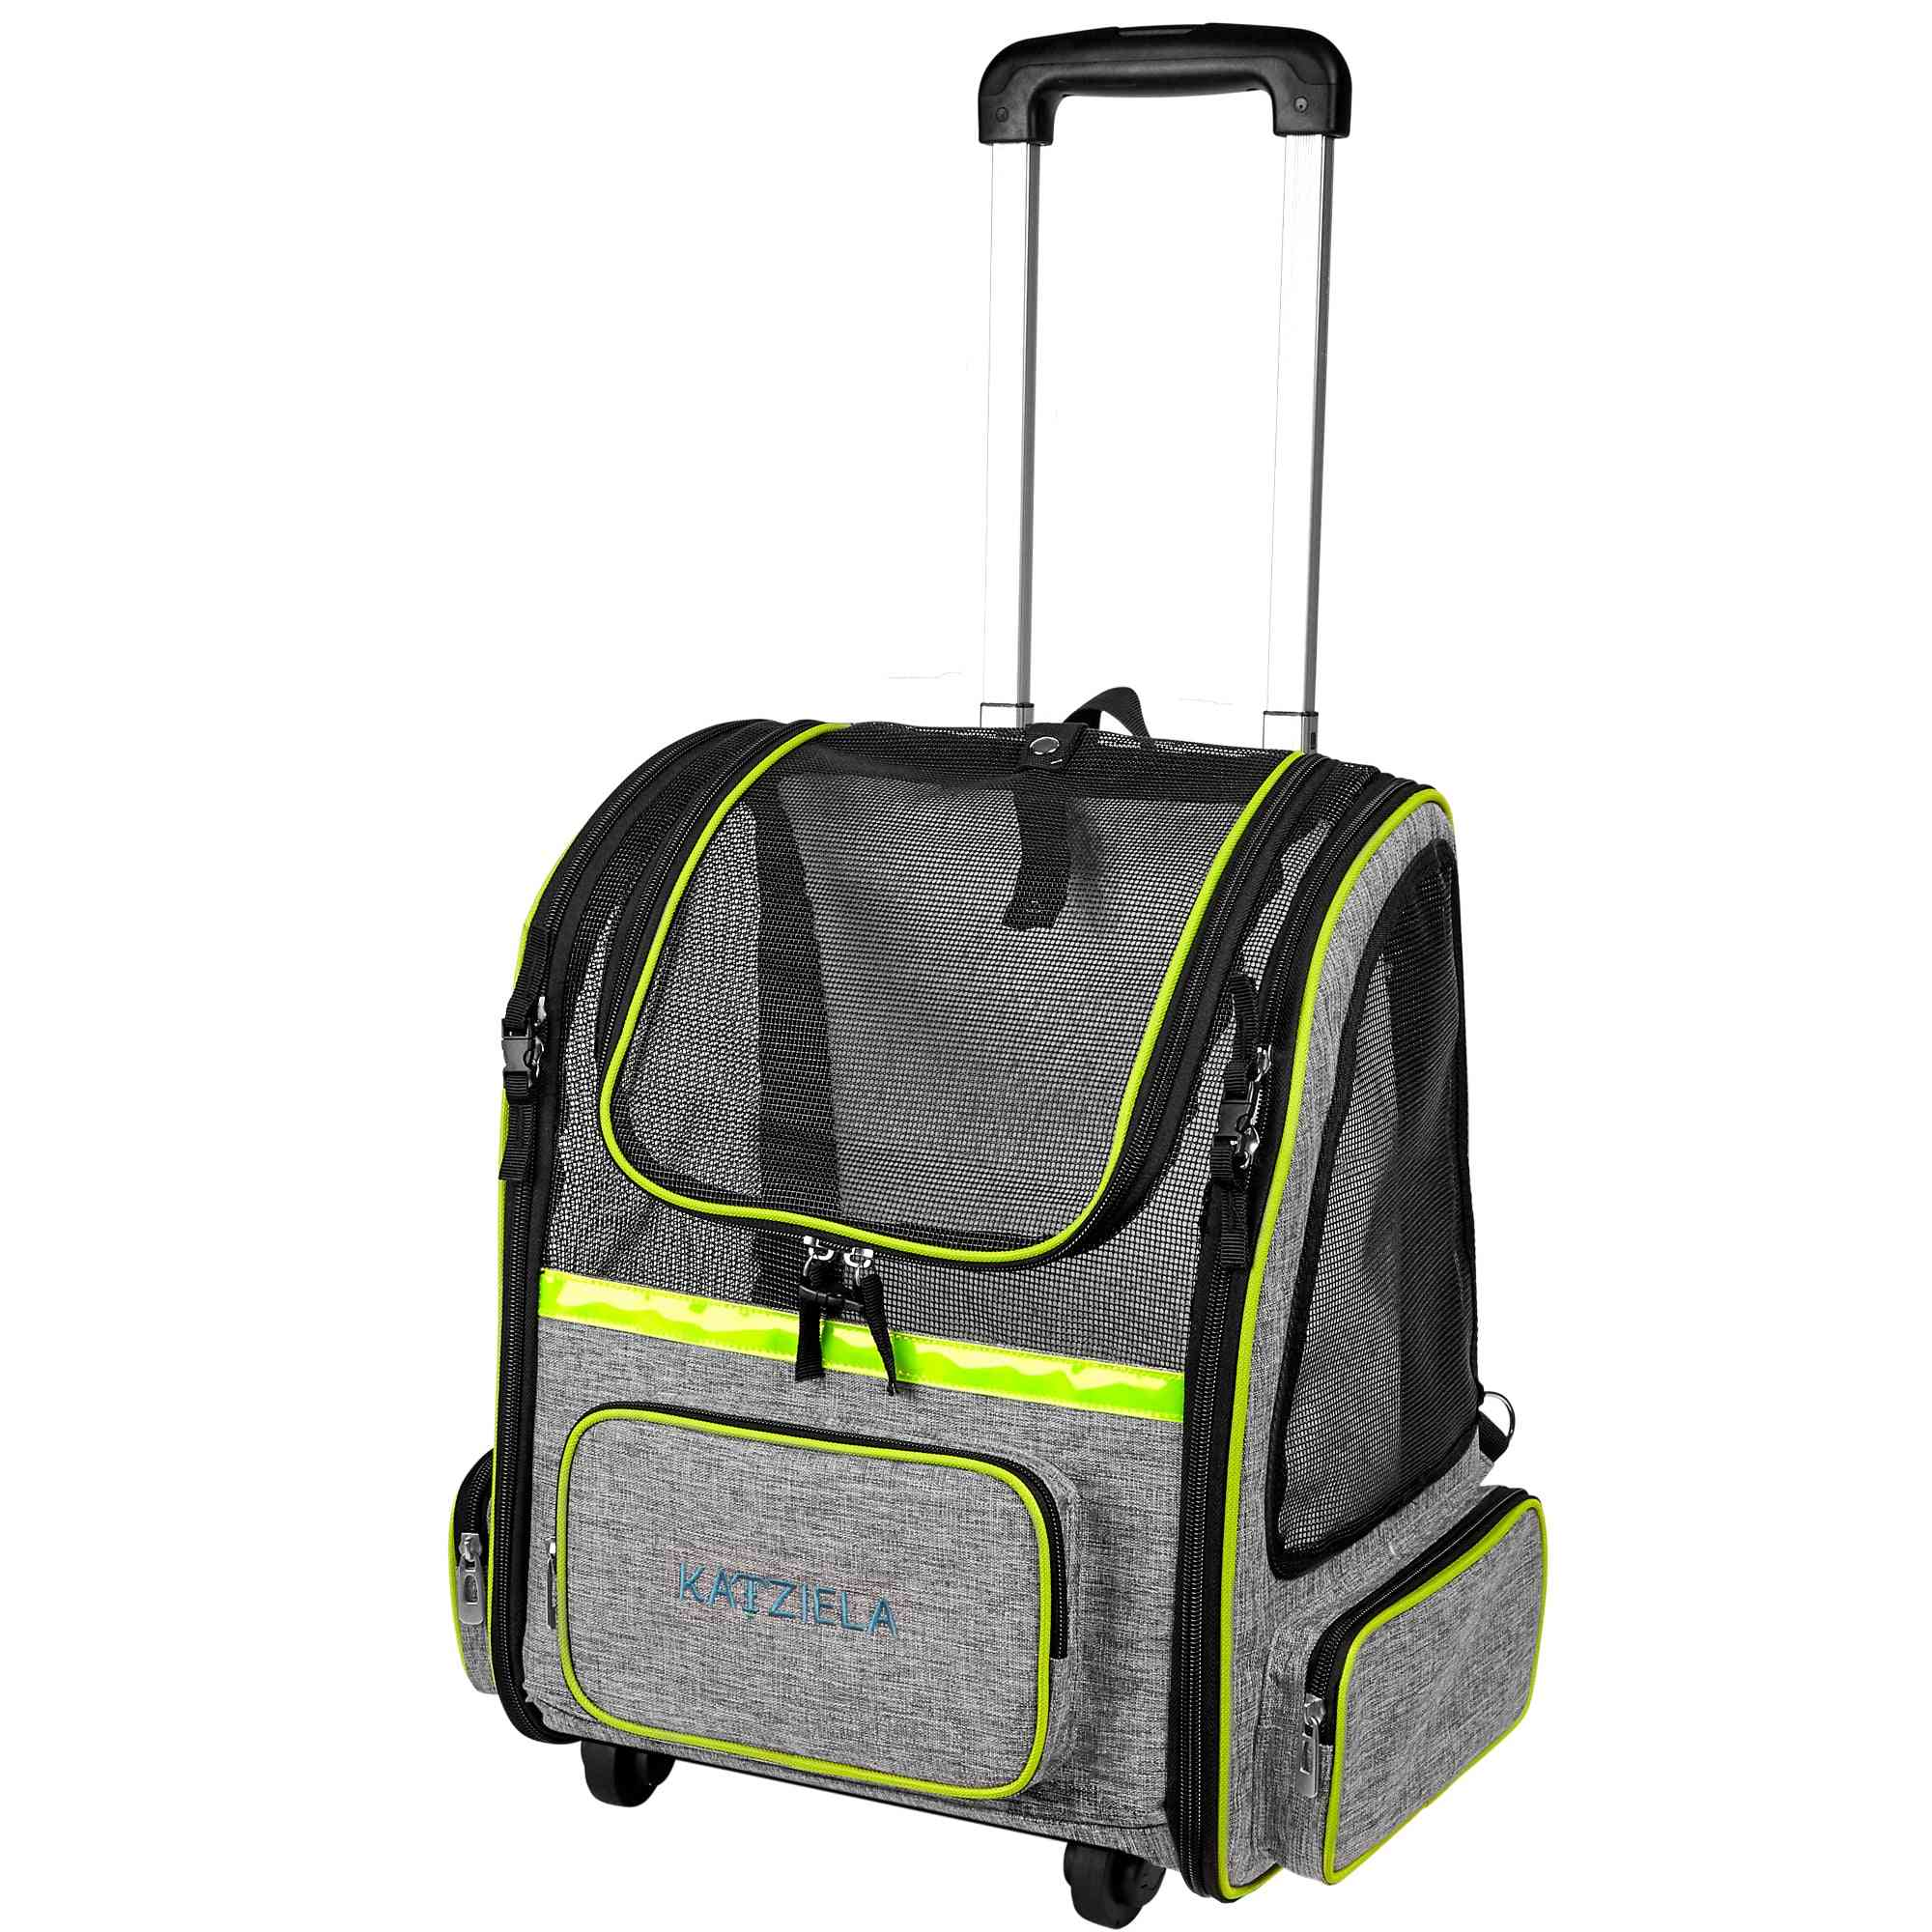 Dual Rolling/backpack Carrier With Telescopic Handle